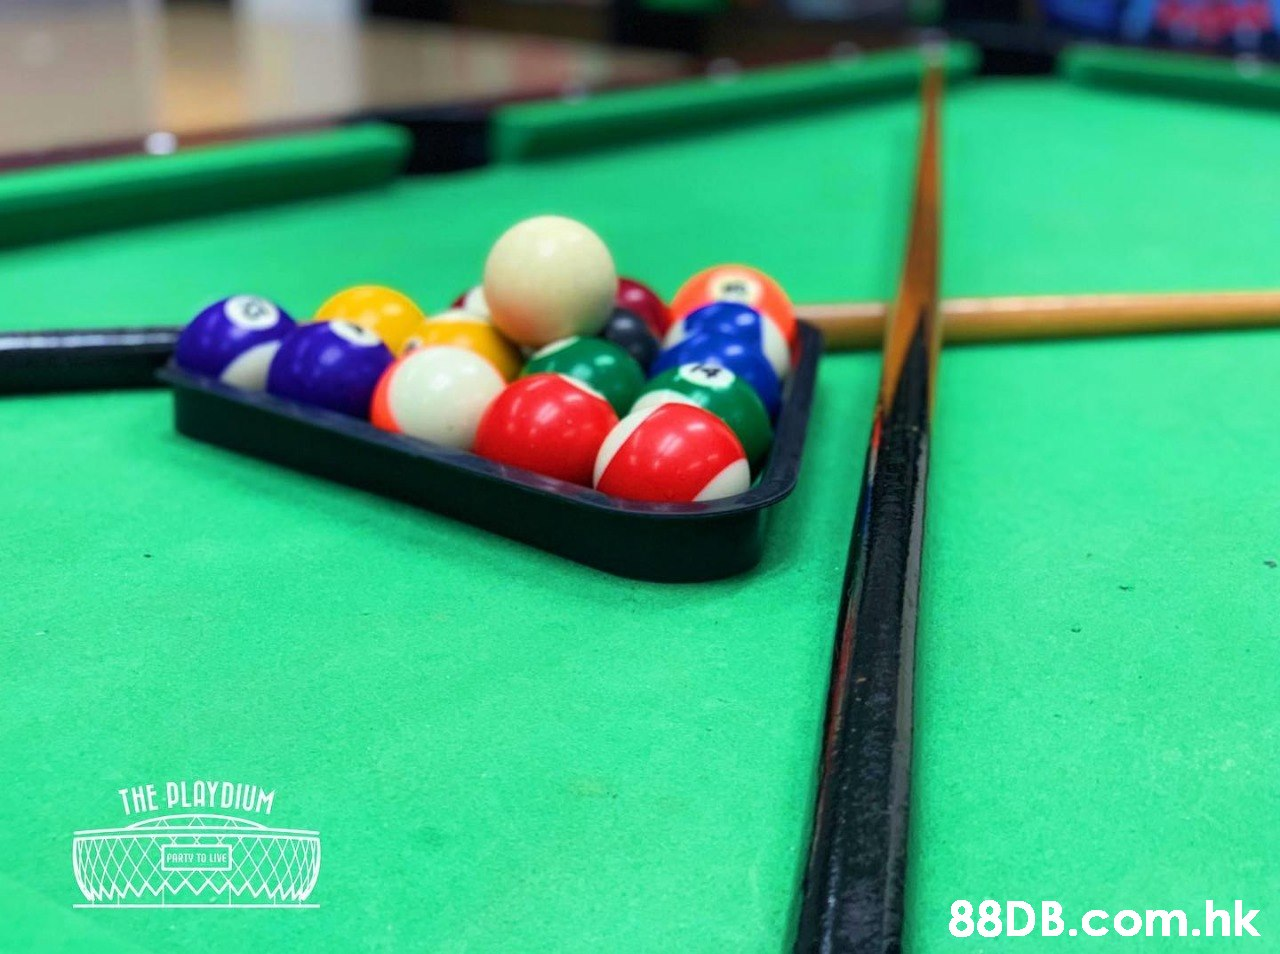 THE DLAYDIUM PARTY TO LIVE .hk  Billiard table,Pool,Billiards,Billiard ball,Indoor games and sports